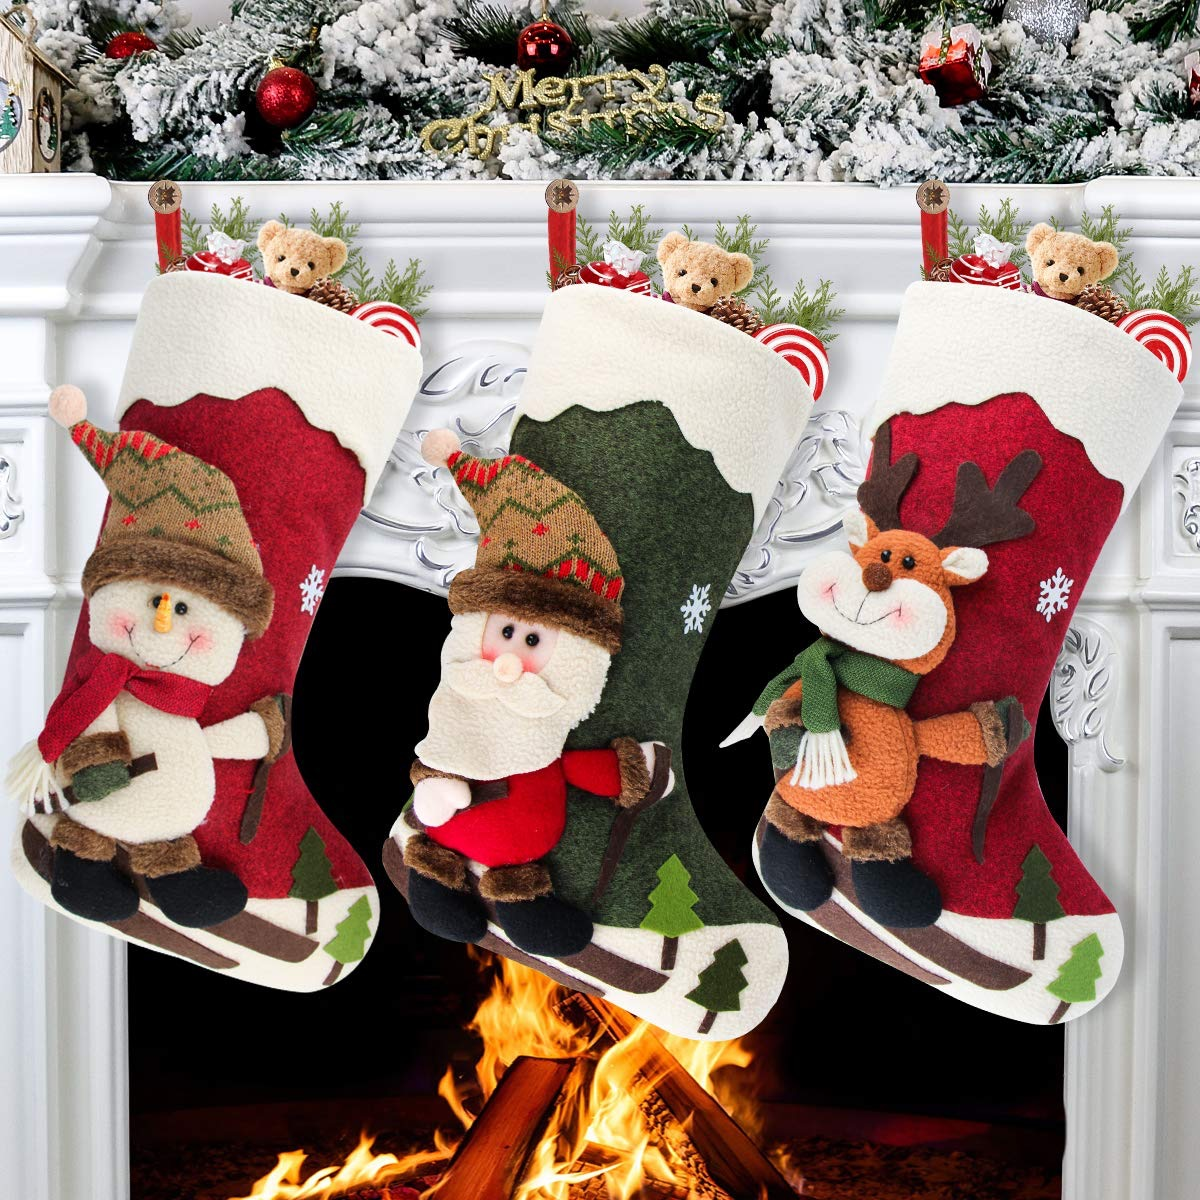 three stockings with 3d winter characters hung on mantle